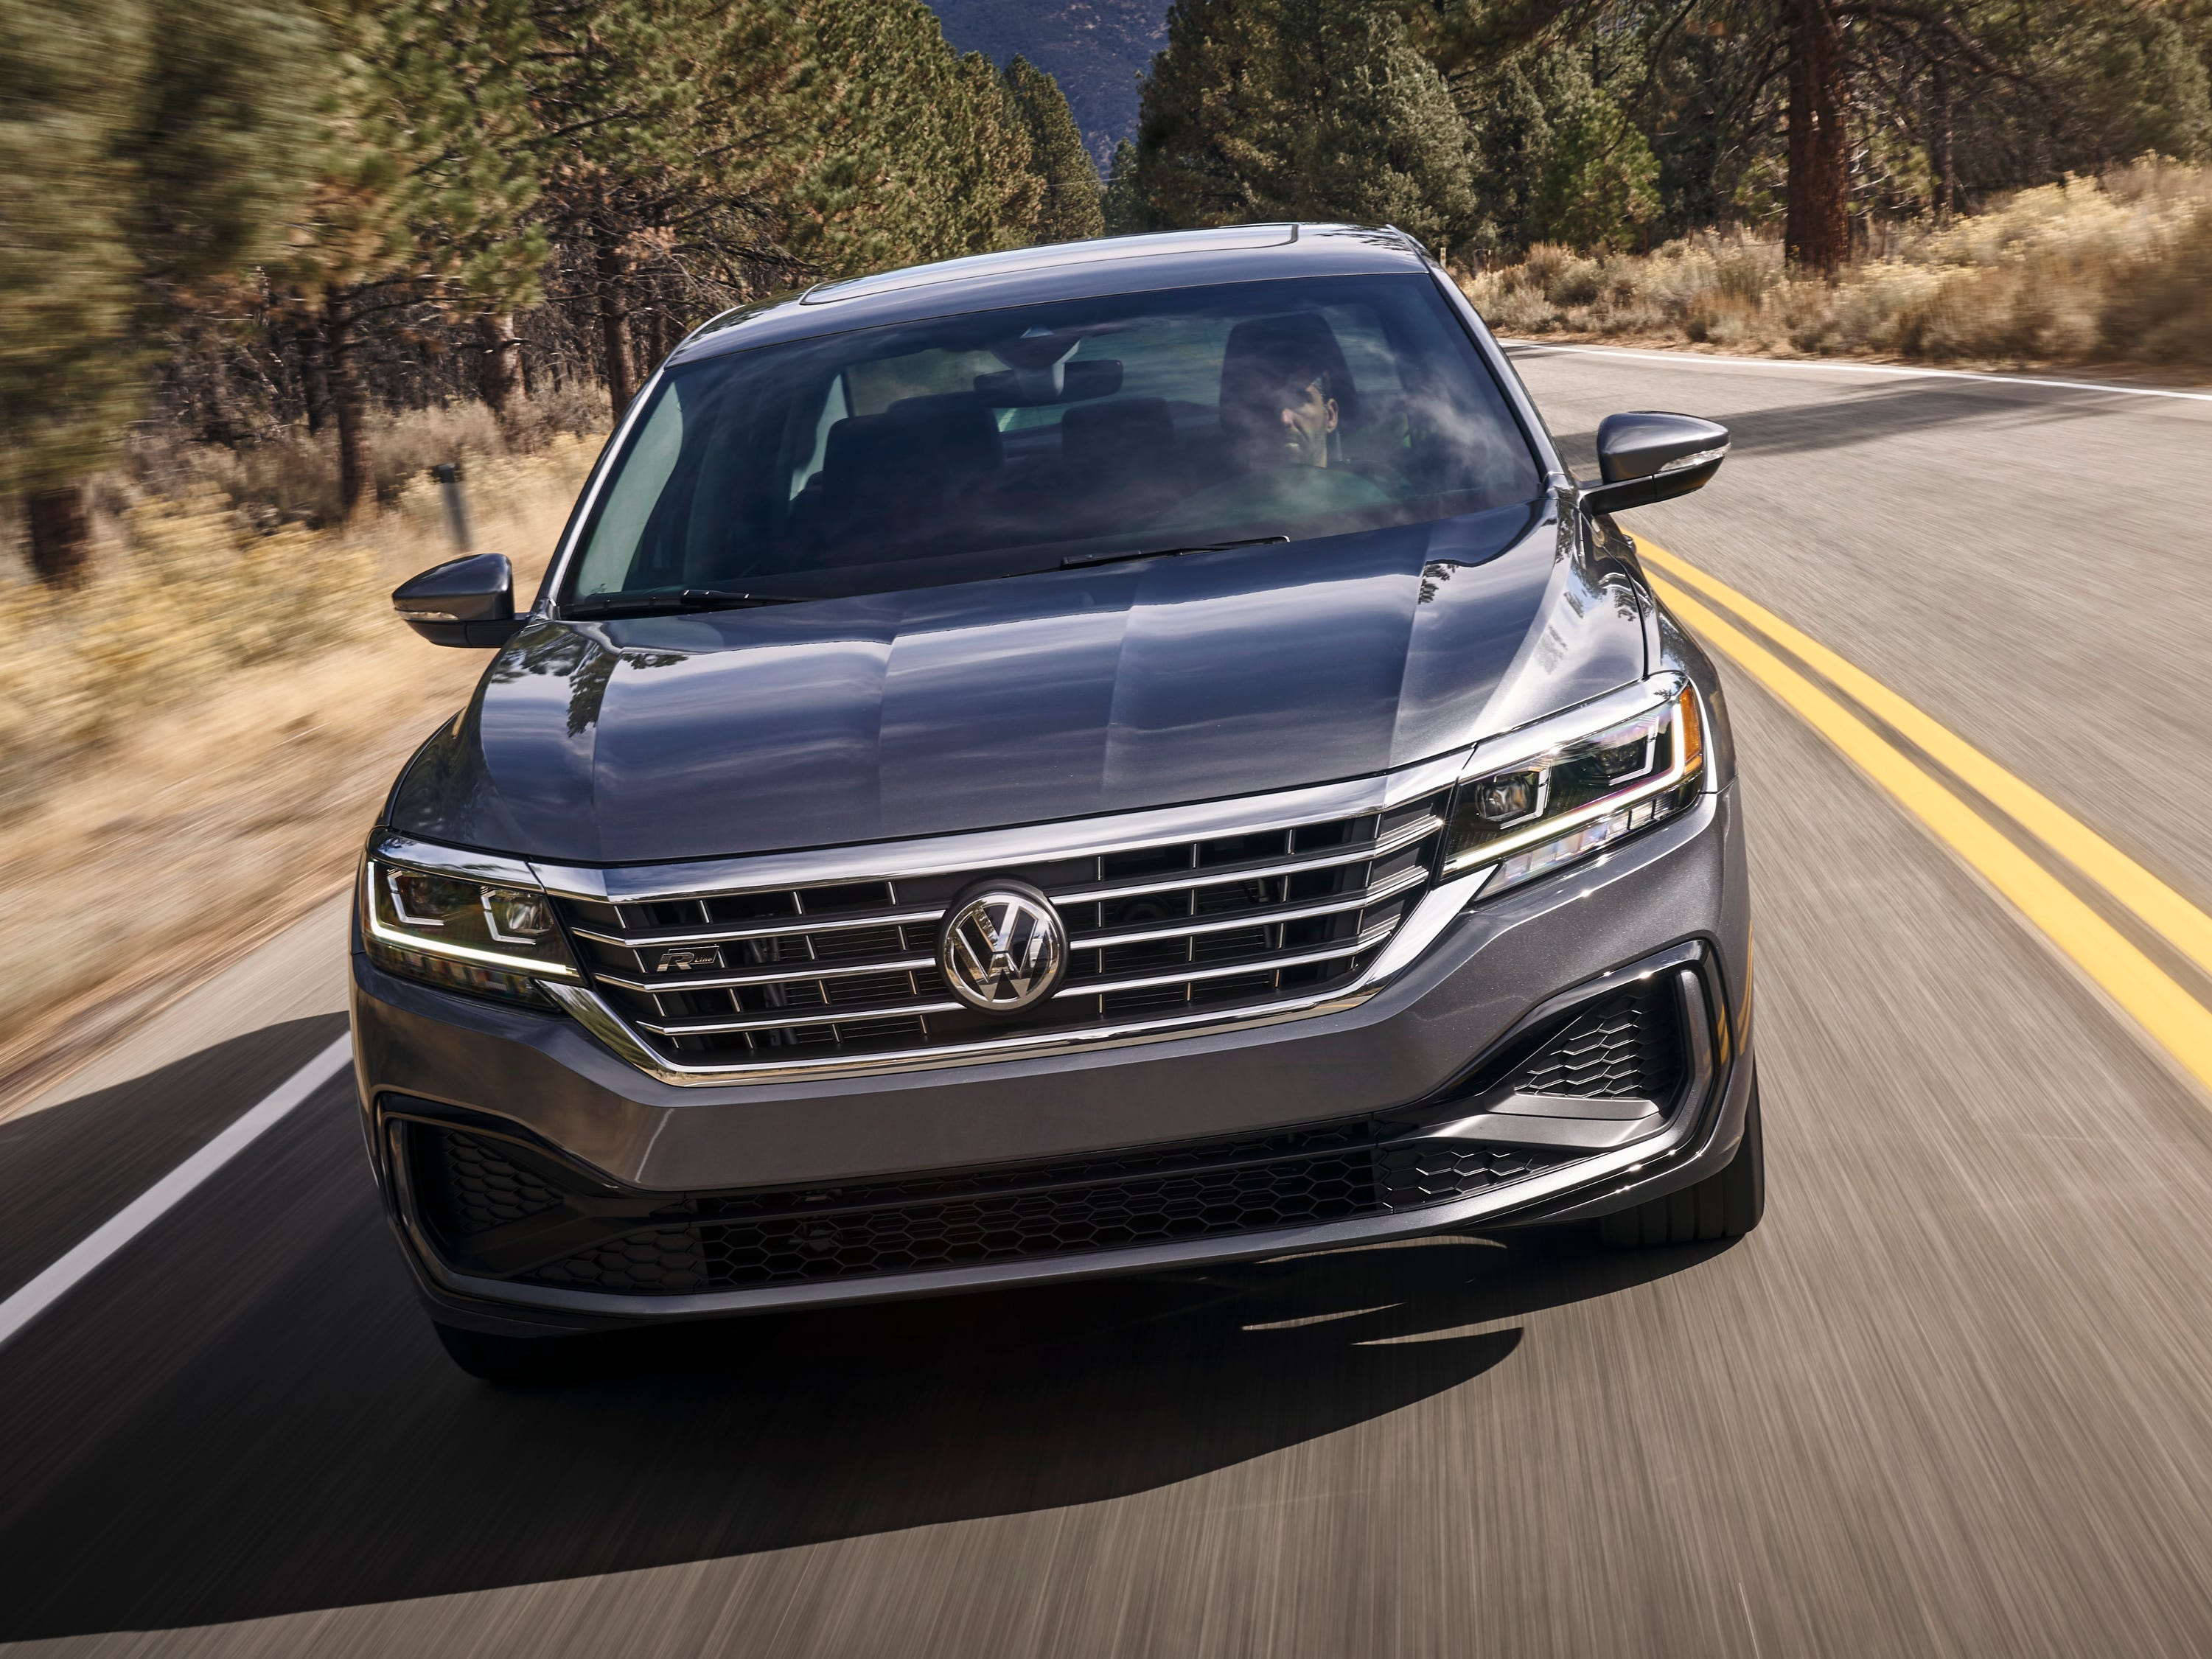 While the 2020 Passat retains the underpinnings of the previous model, it has been completely restyled, with  a dynamic coupe-like roofline and dominant grille.